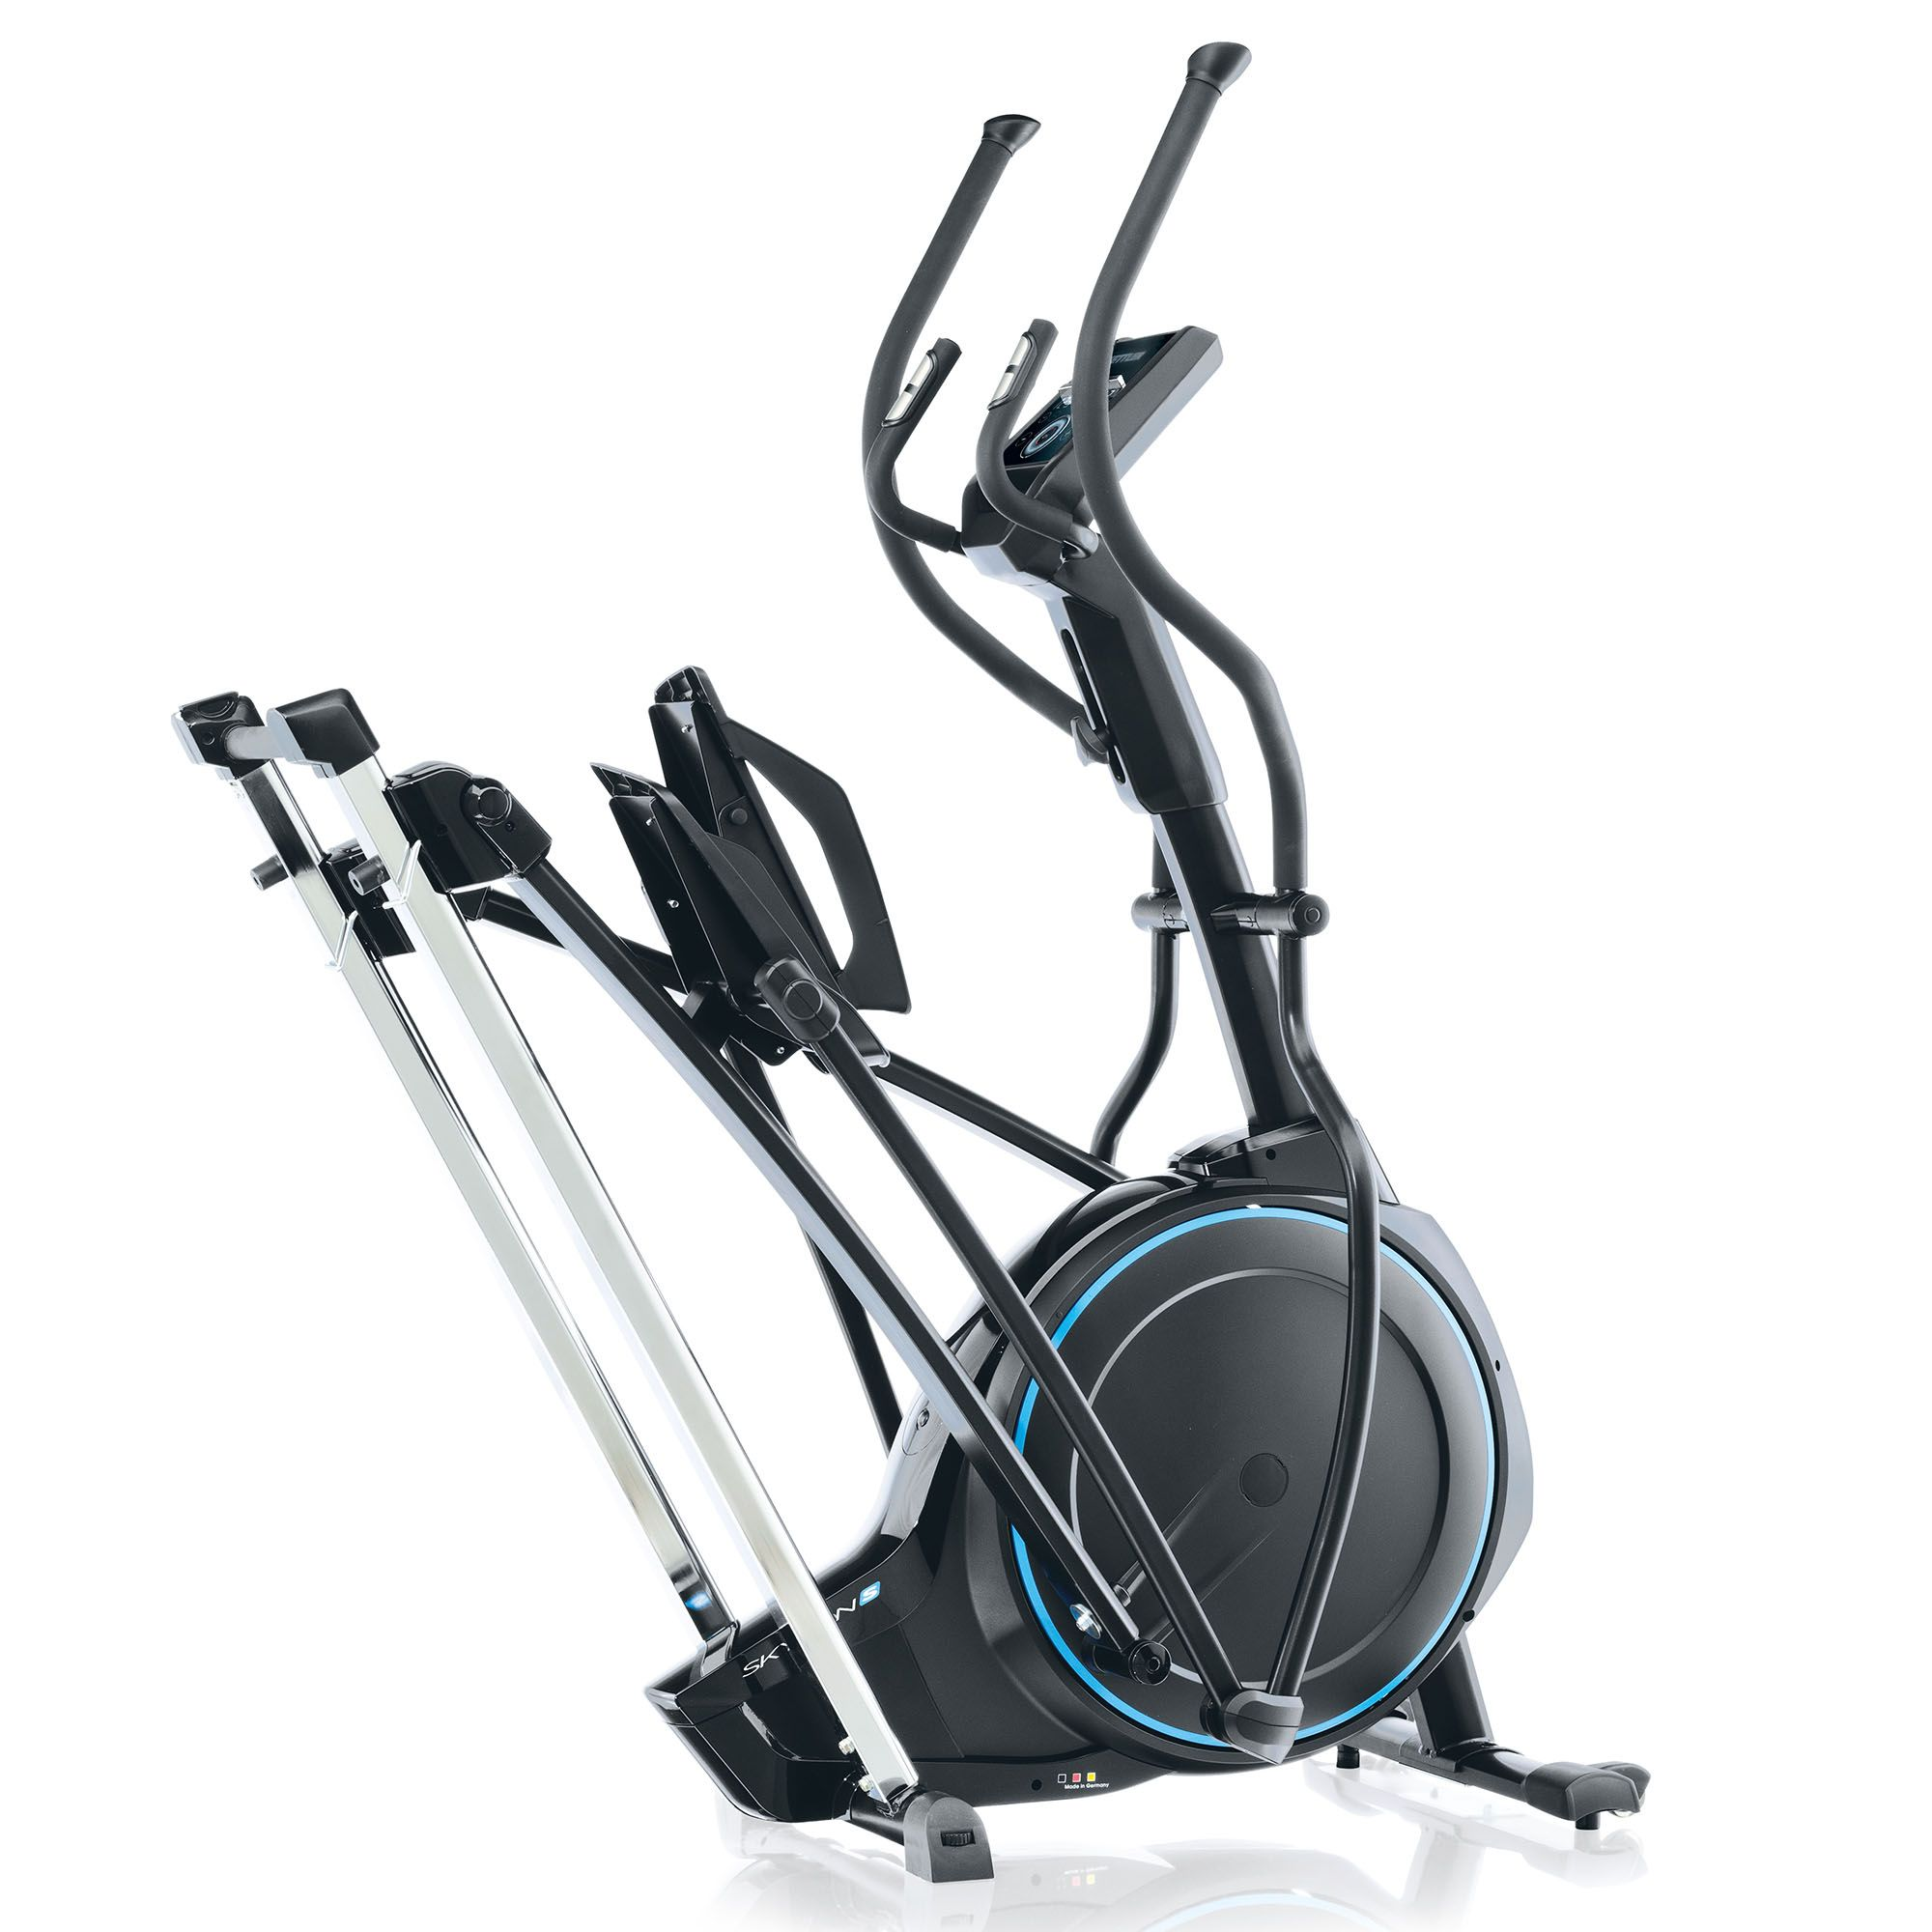 Folding Display Table picture on kettler skylon s folding elliptical cross trainer with Folding Display Table, Folding Table b389530cd196ff04f53afd7561eda1e1